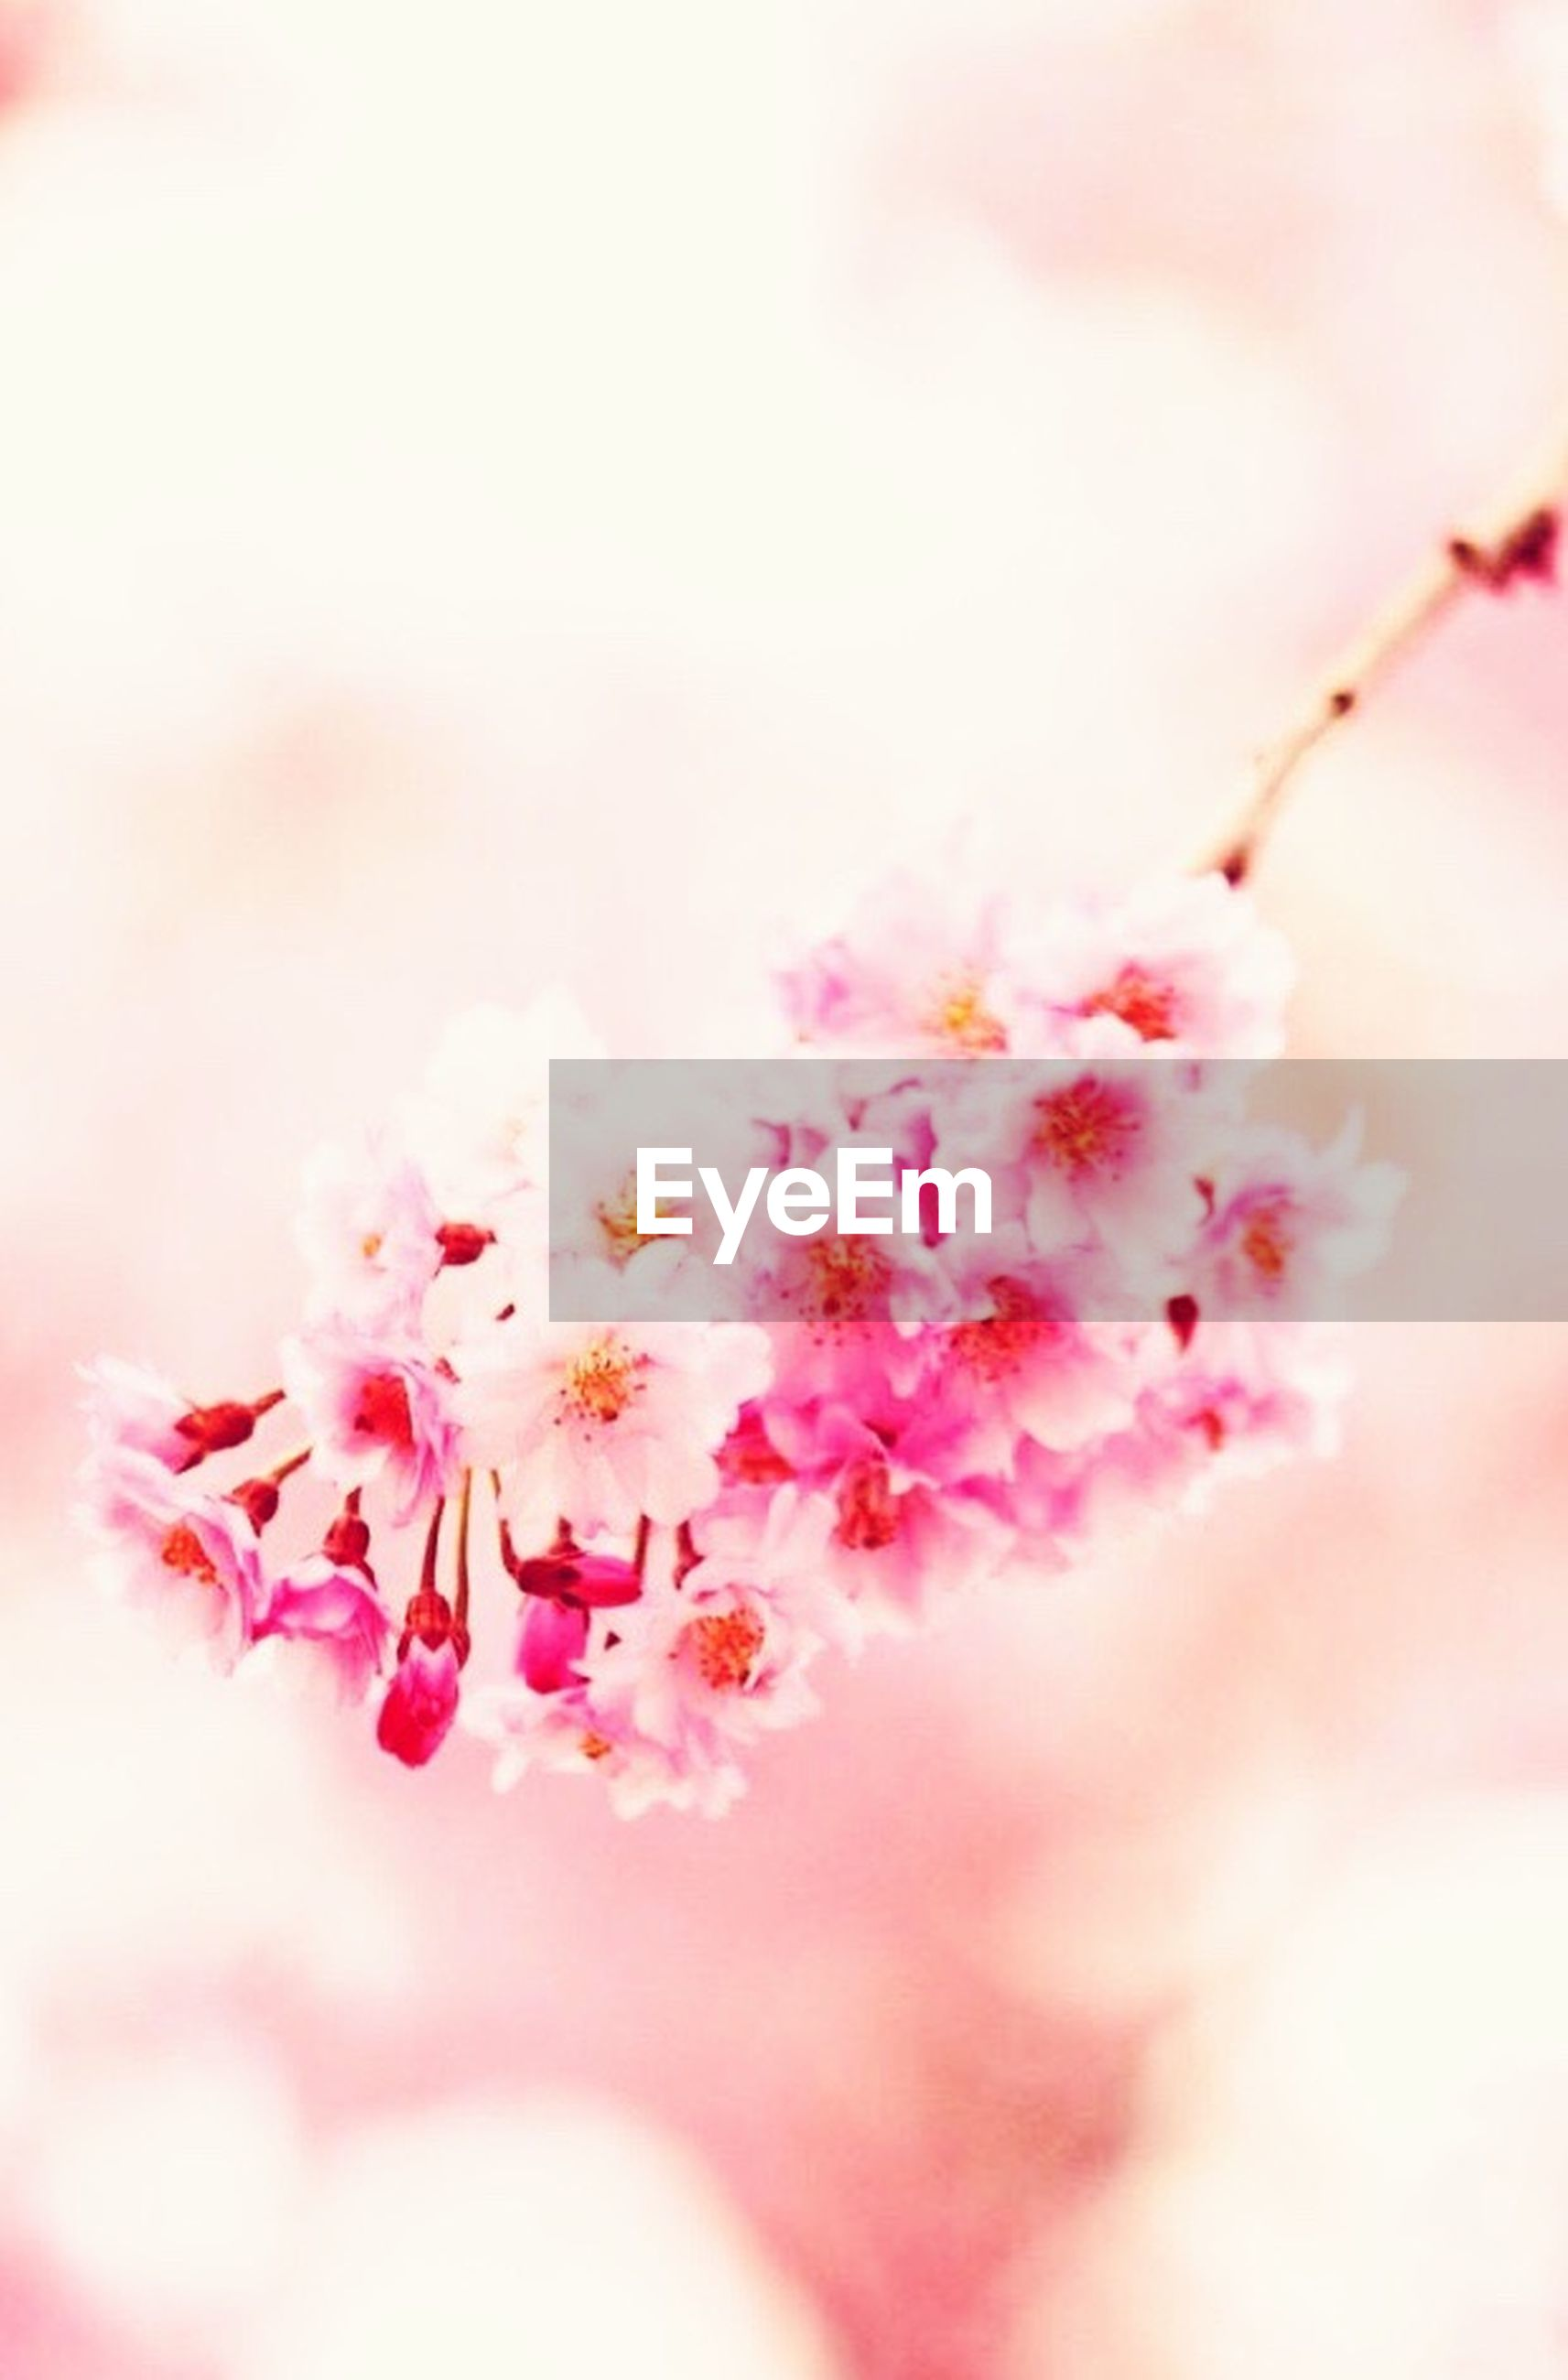 flower, pink color, selective focus, fragility, petal, close-up, freshness, beauty in nature, focus on foreground, nature, growth, pink, day, outdoors, branch, no people, blooming, red, twig, blossom